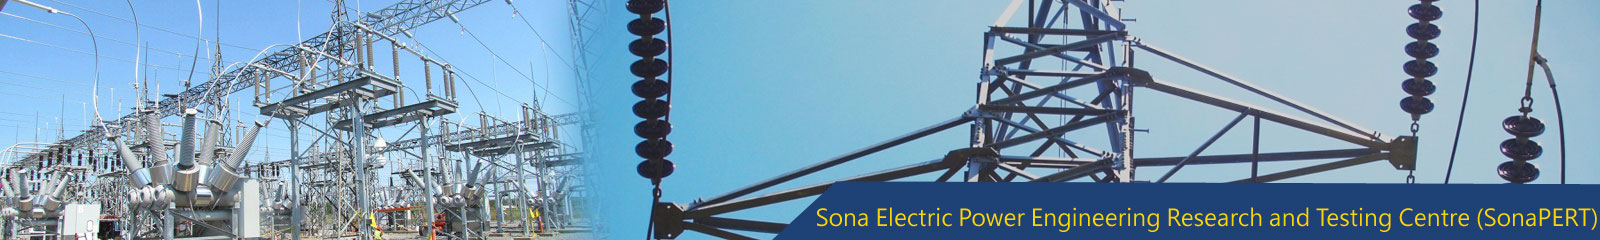 Sona Electric Power Engineering Research and Testing Centre